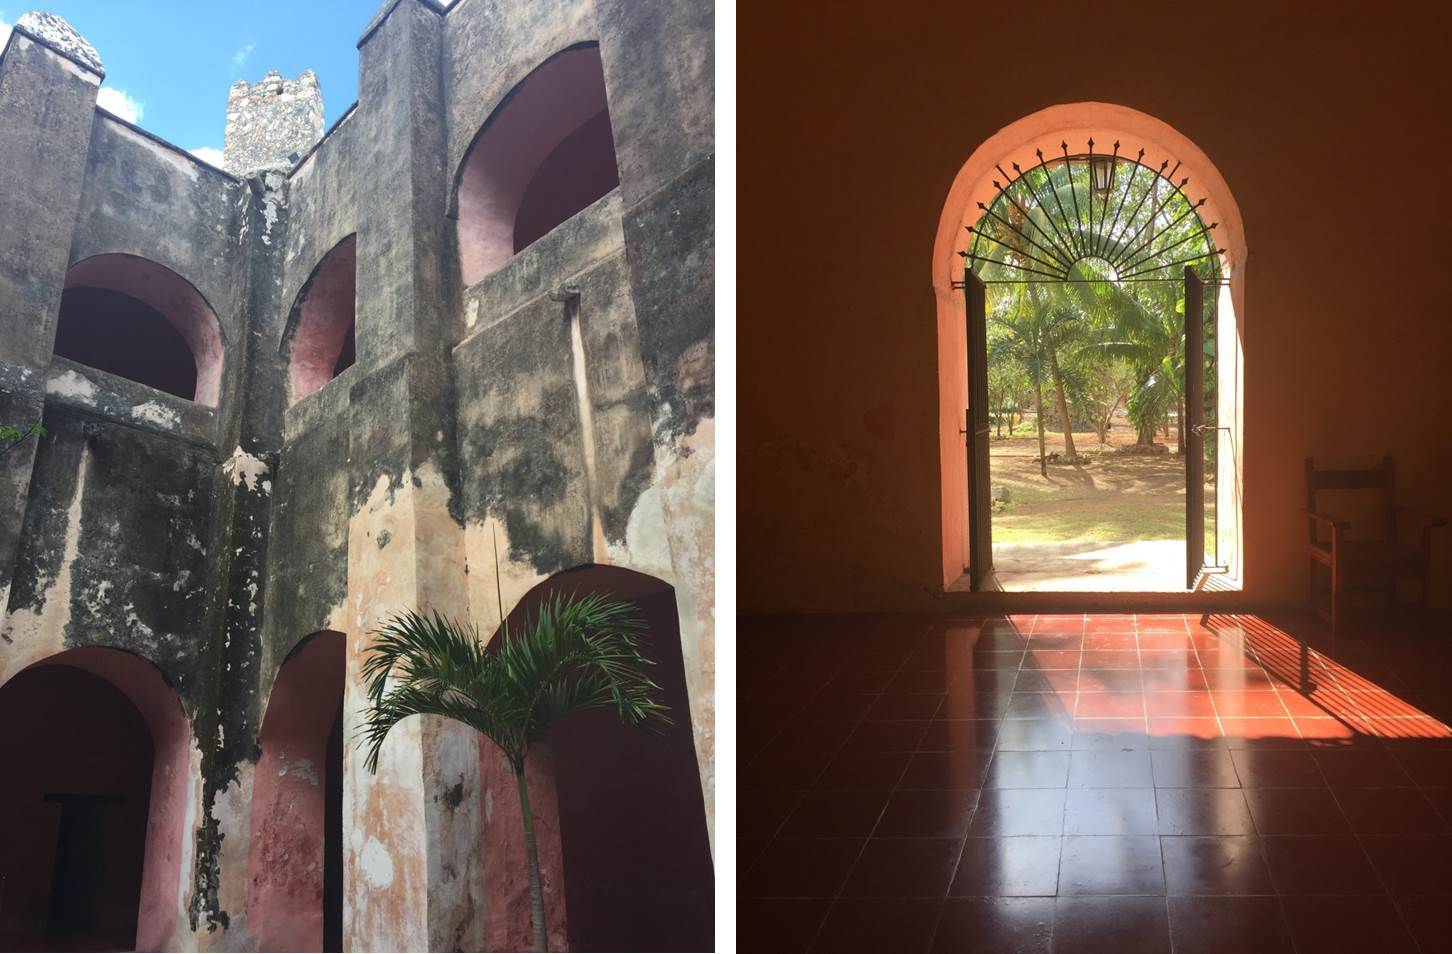 Gorgeous architecture at Convento de San Bernardino, the set for our Fall 2017 David's Bridal Collection photo shoot. See more on the David's Bridal blog - www.davidsbridal.com/blog.